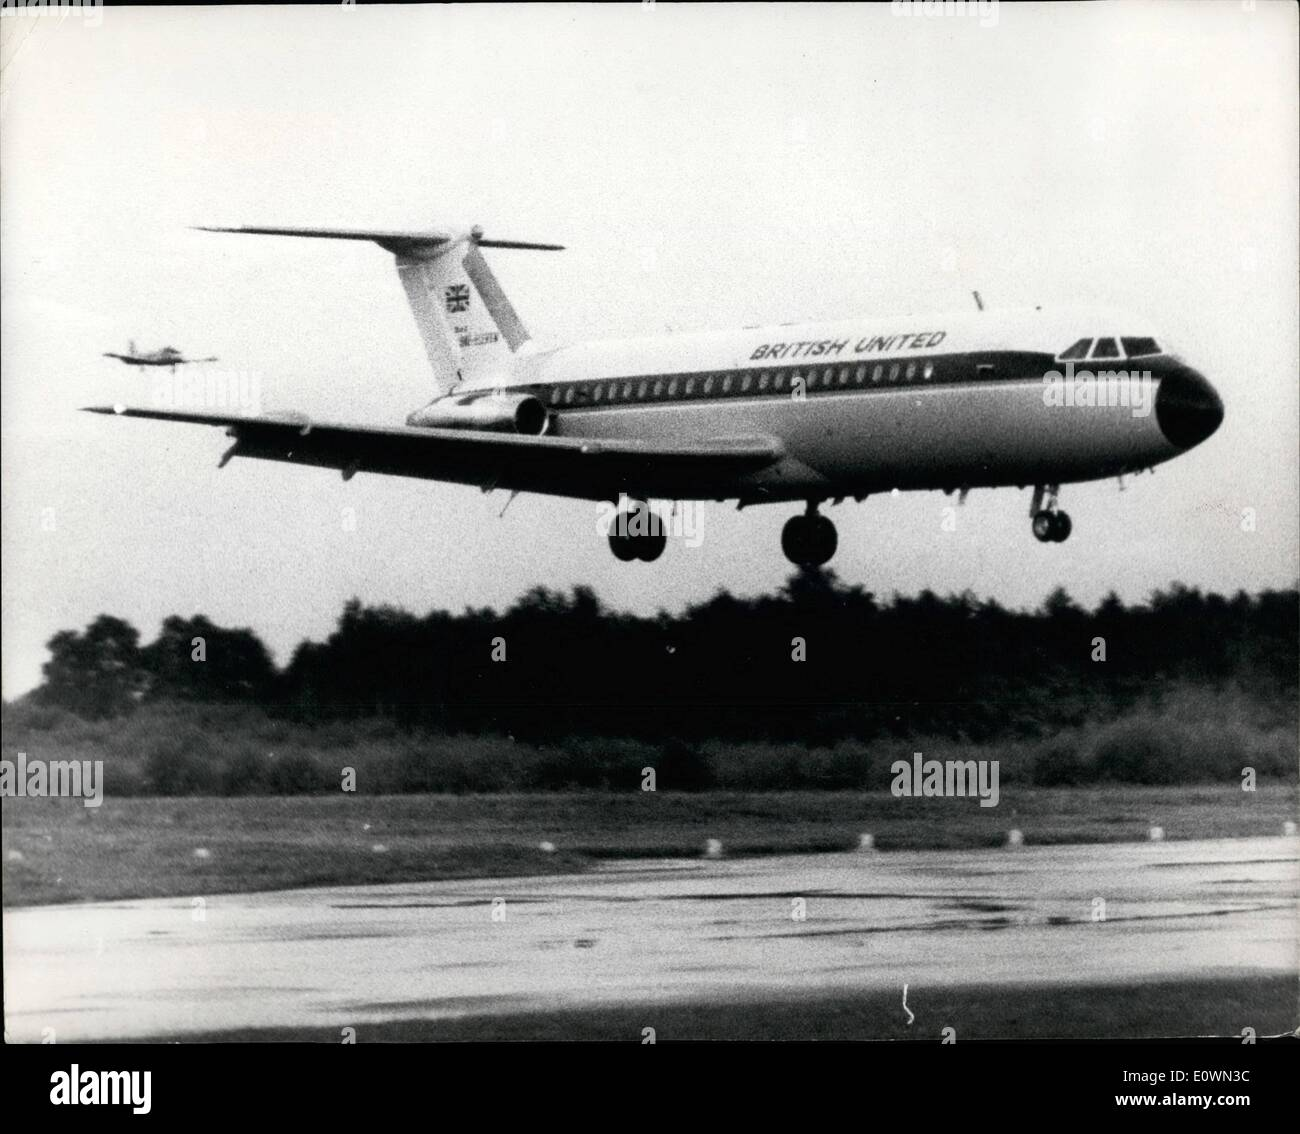 Aug. 20, 1963 - 20-8-63 Bus stop jet maiden flight. The new B.A.C. 111, known as the 'bus stop jet' because it has been designed for short haul work with a very quick turn round, made its maiden flight from Hurn airport last night. The 111 costs about £875,000 and already 60 of them have been sold straight off the drawing board, half of them to American operators. It will be capable of carrying more than 70 passengers plus freight at a speed of 550 mph for journeys of between 150 and 1,000 miles. Photo Shows: After her successful maiden flight, the B.A.C - Stock Image